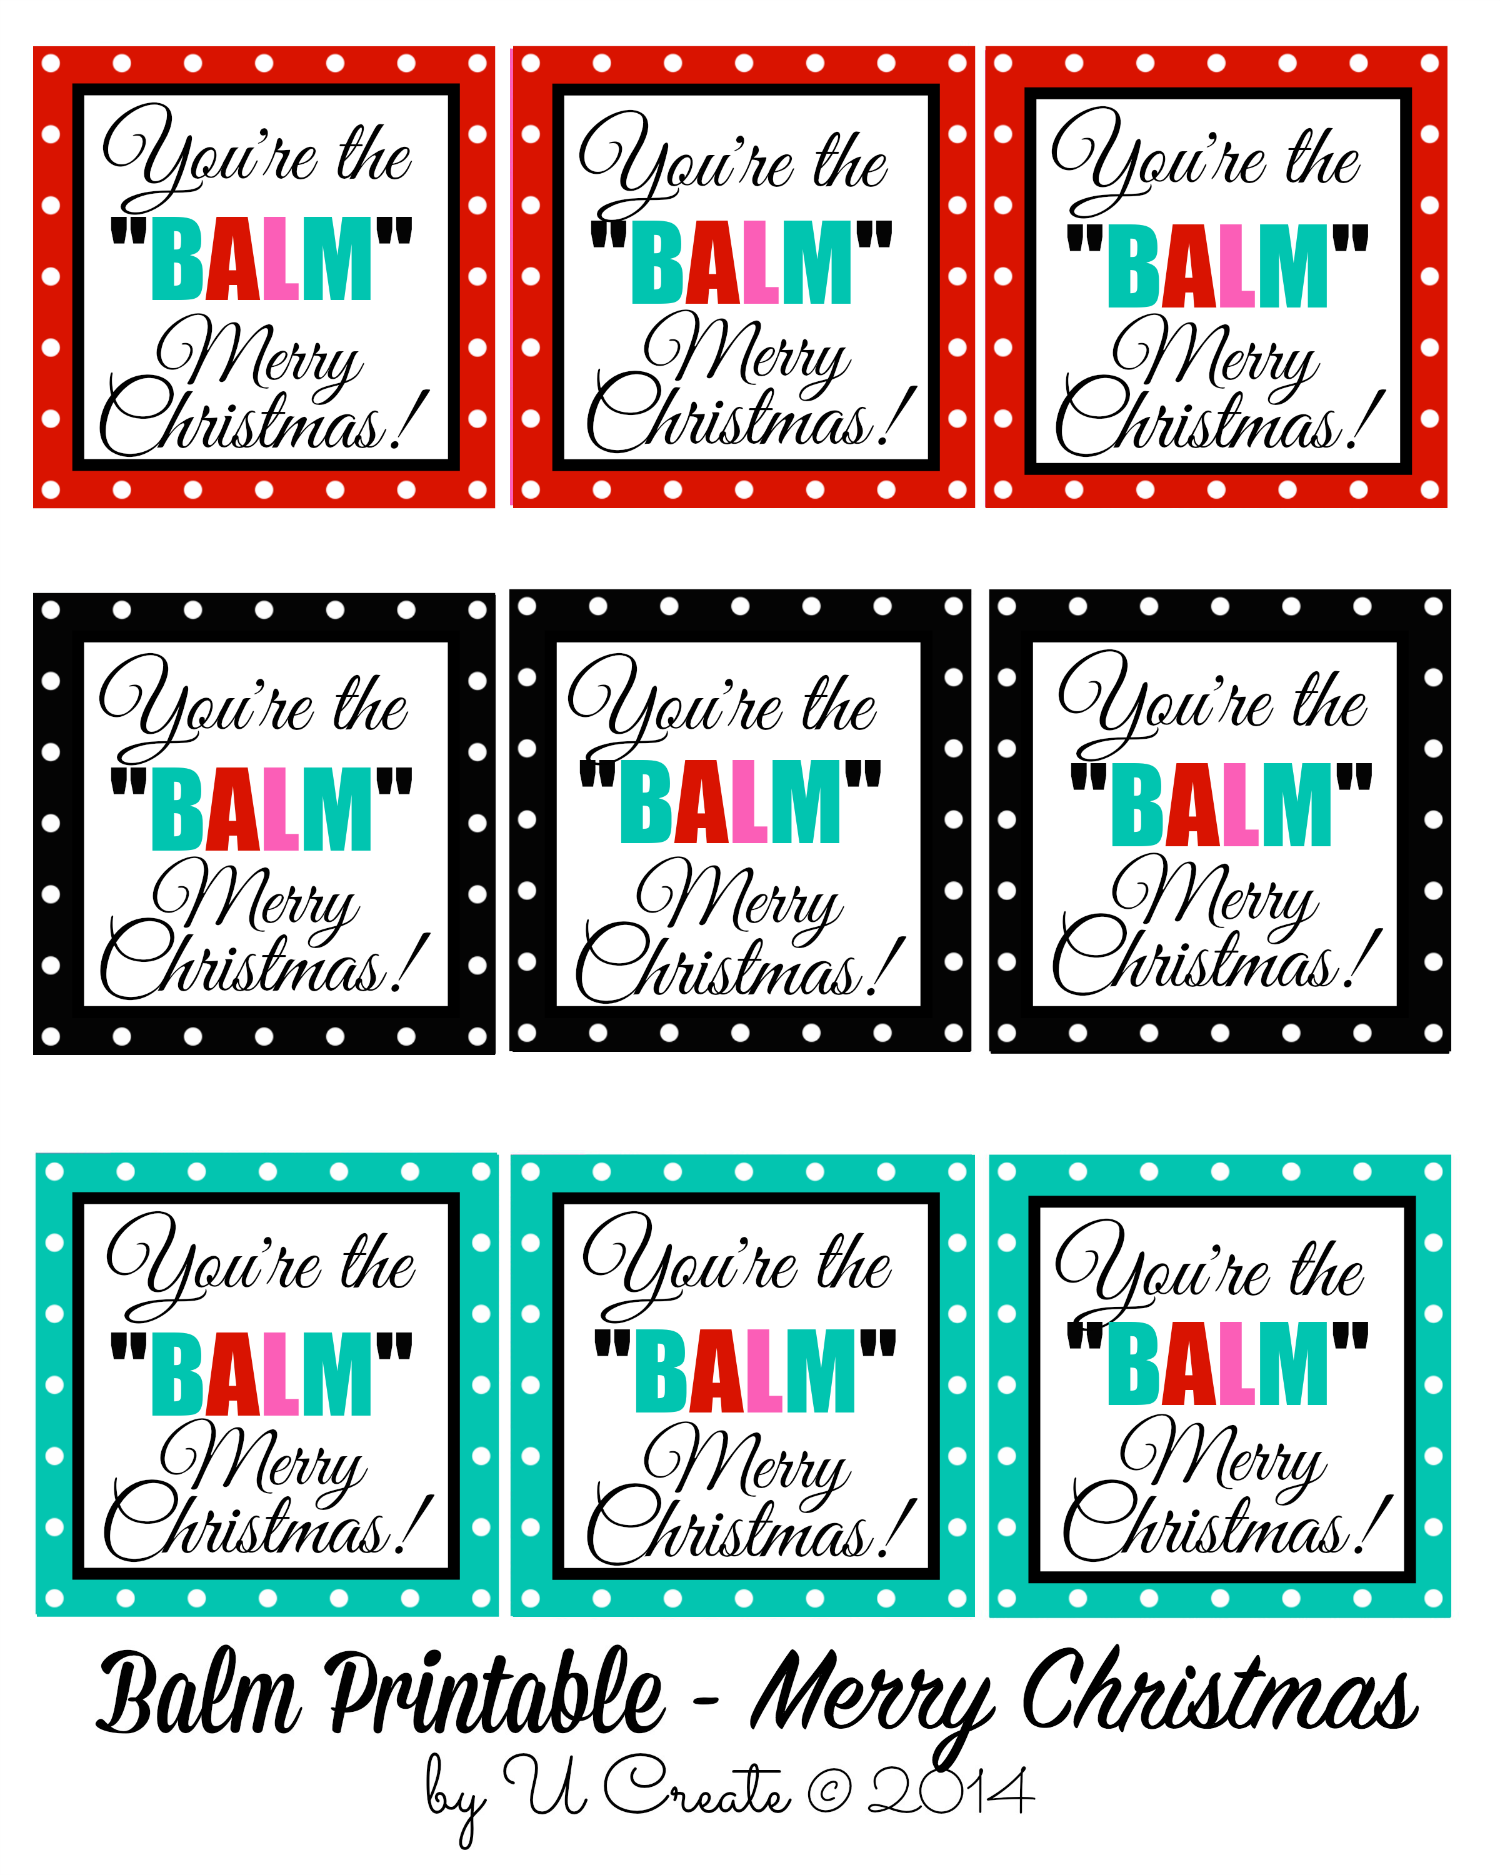 graphic about You're the Balm Free Printable identify Youre the BALM - Xmas Printables - U Crank out